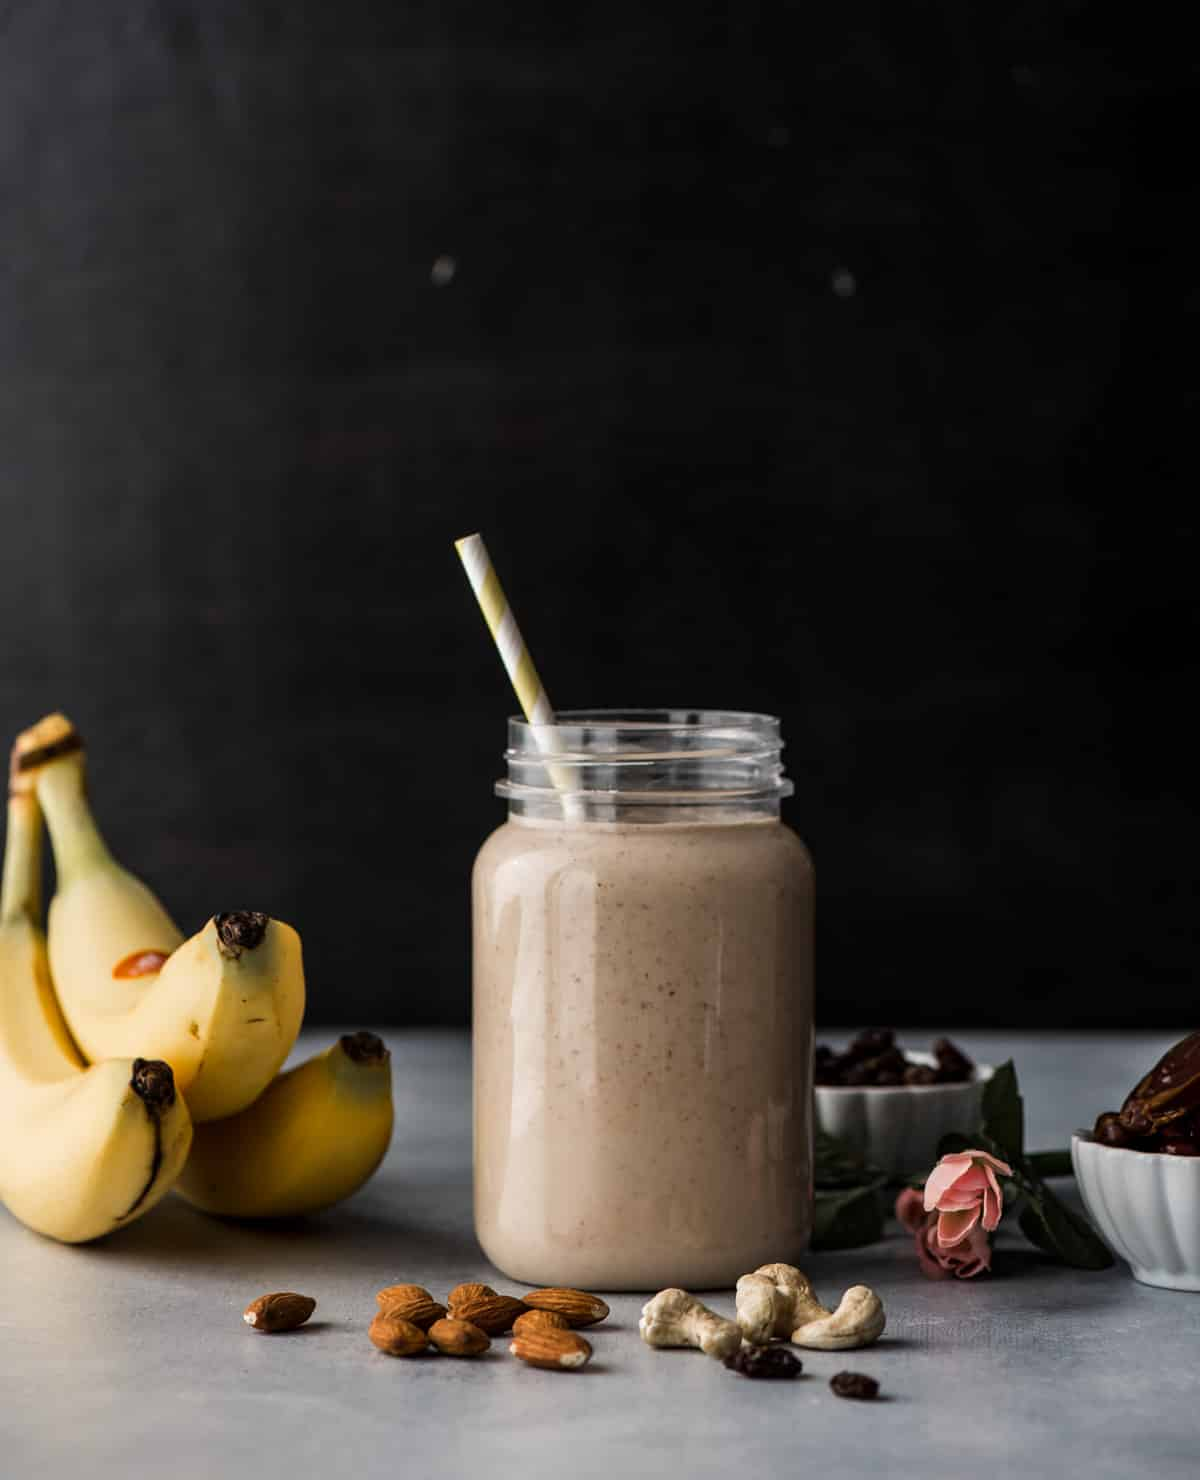 Dry fruit smoothie is served in a glass jar. Surrounding the glass jar are bananas, almonds, cashews, raisins and dates